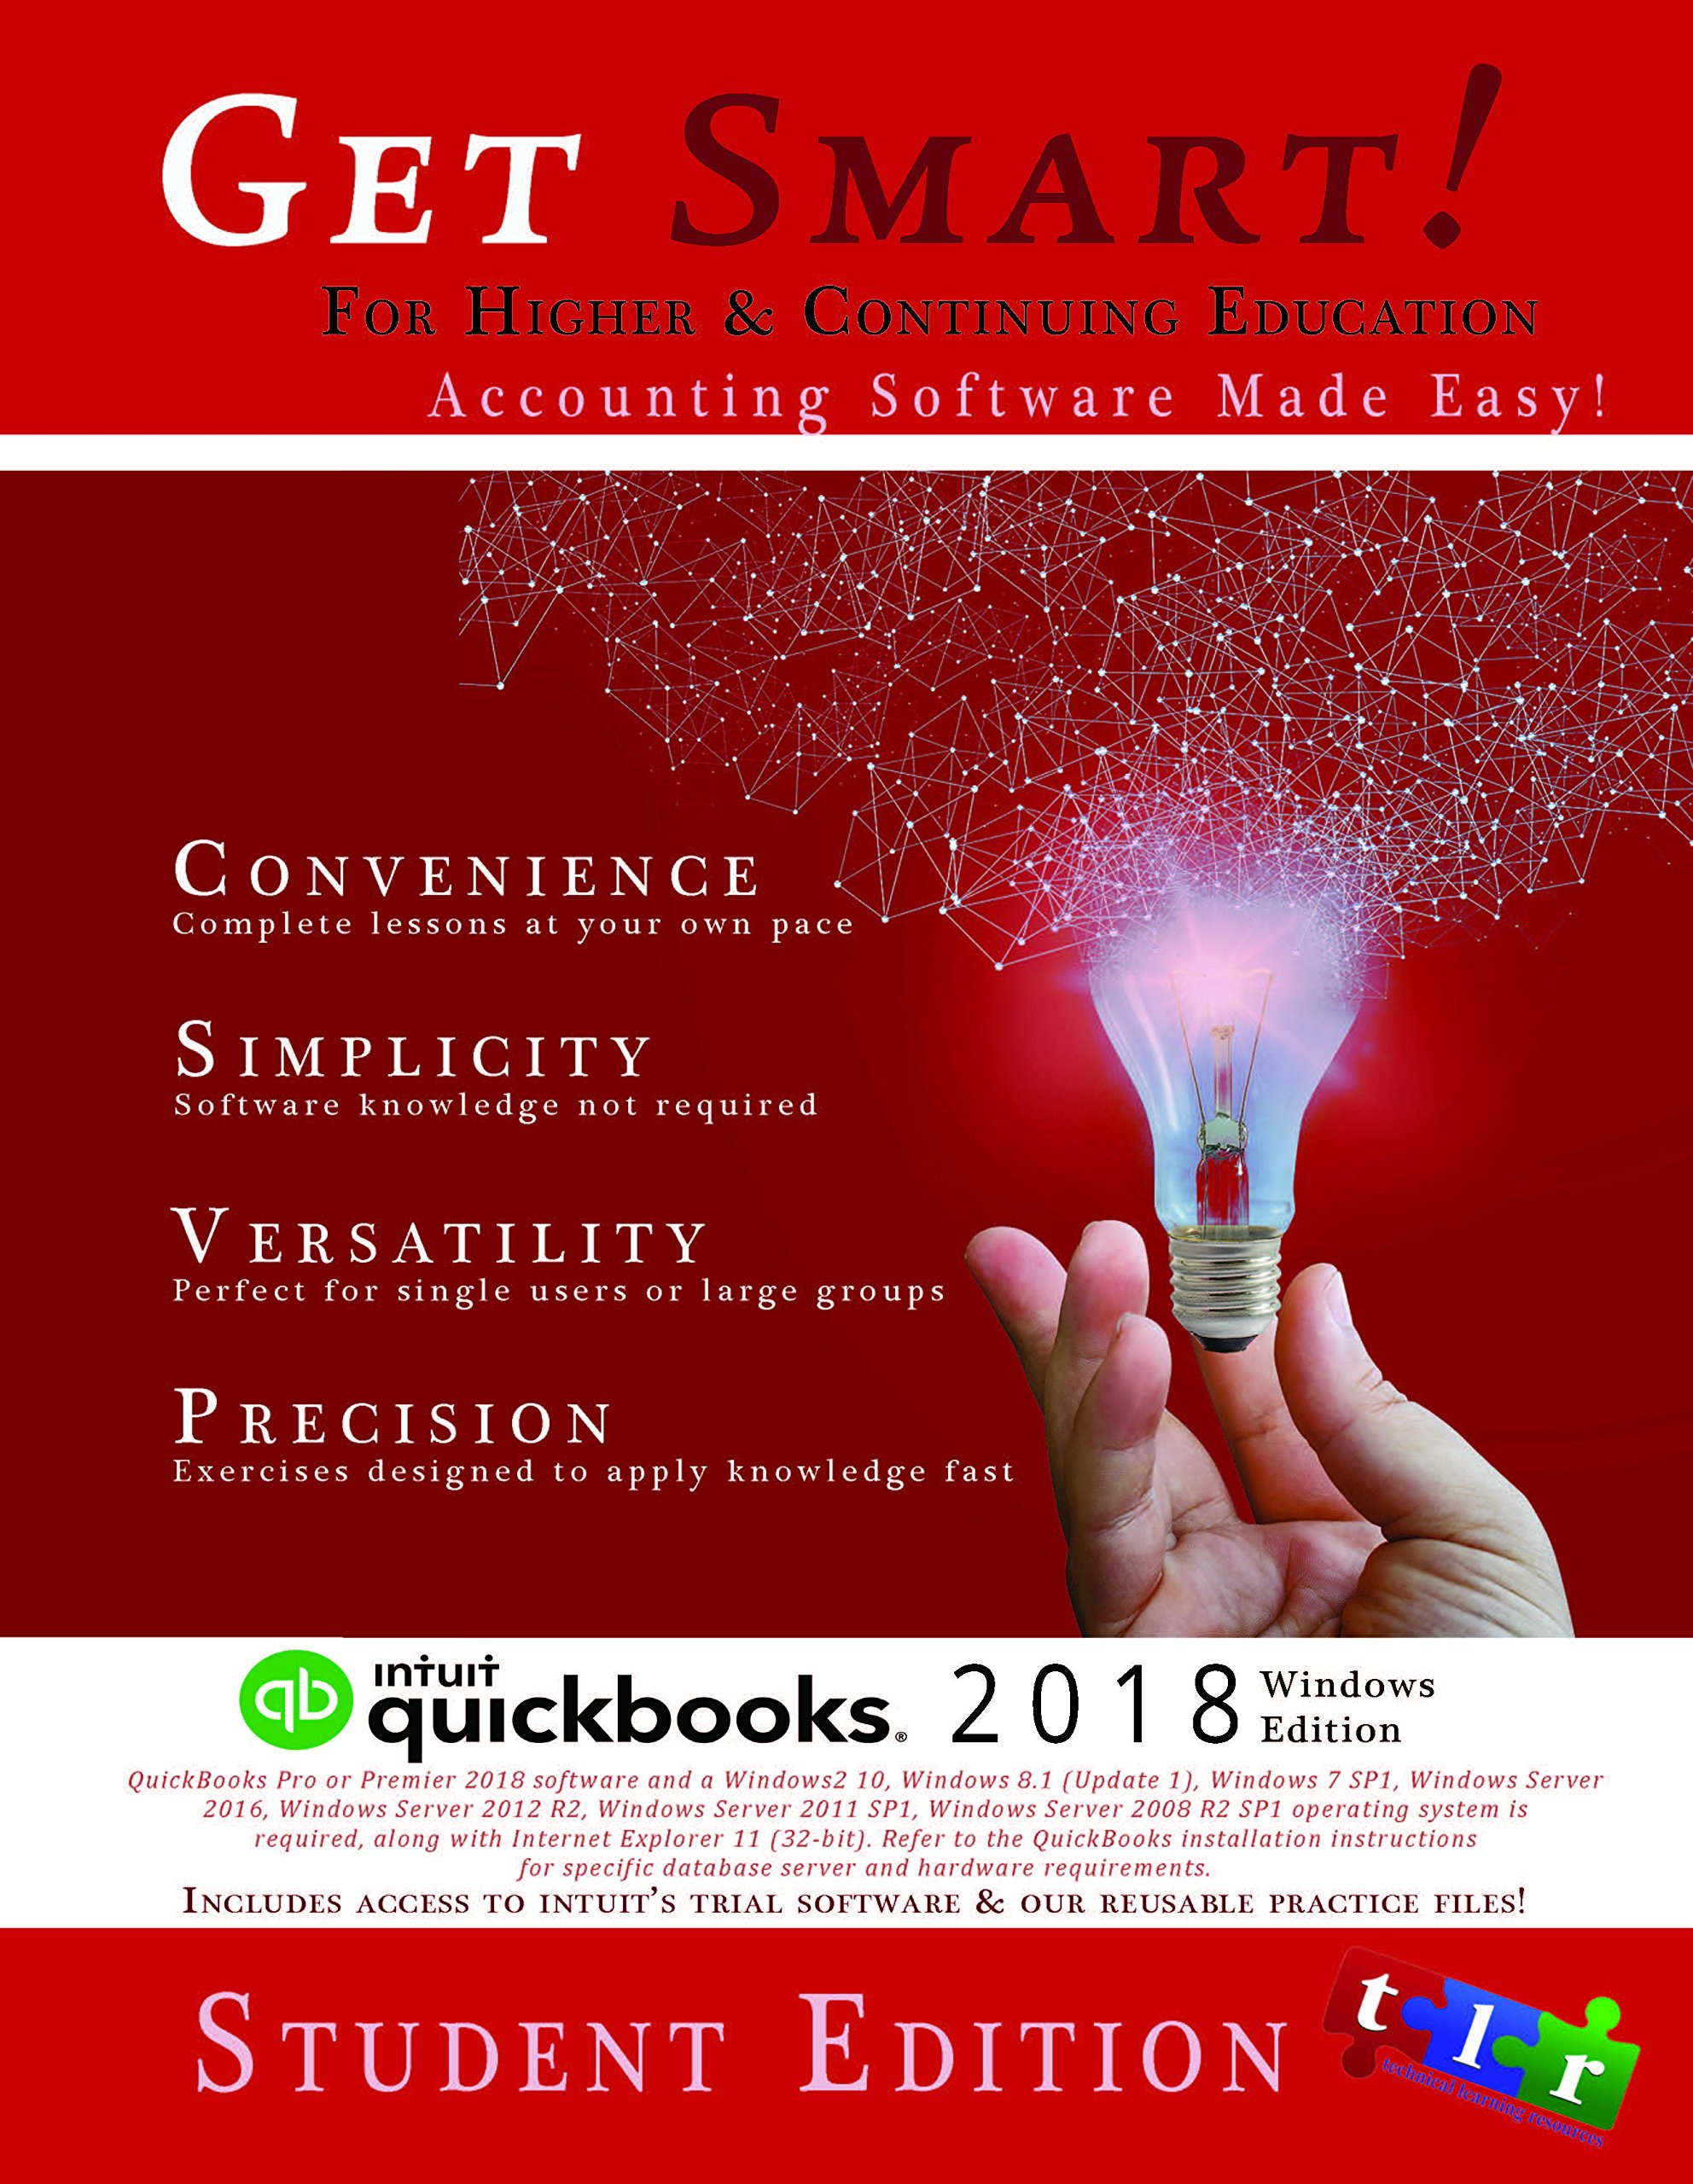 Learning quickbooks for windows 2012.